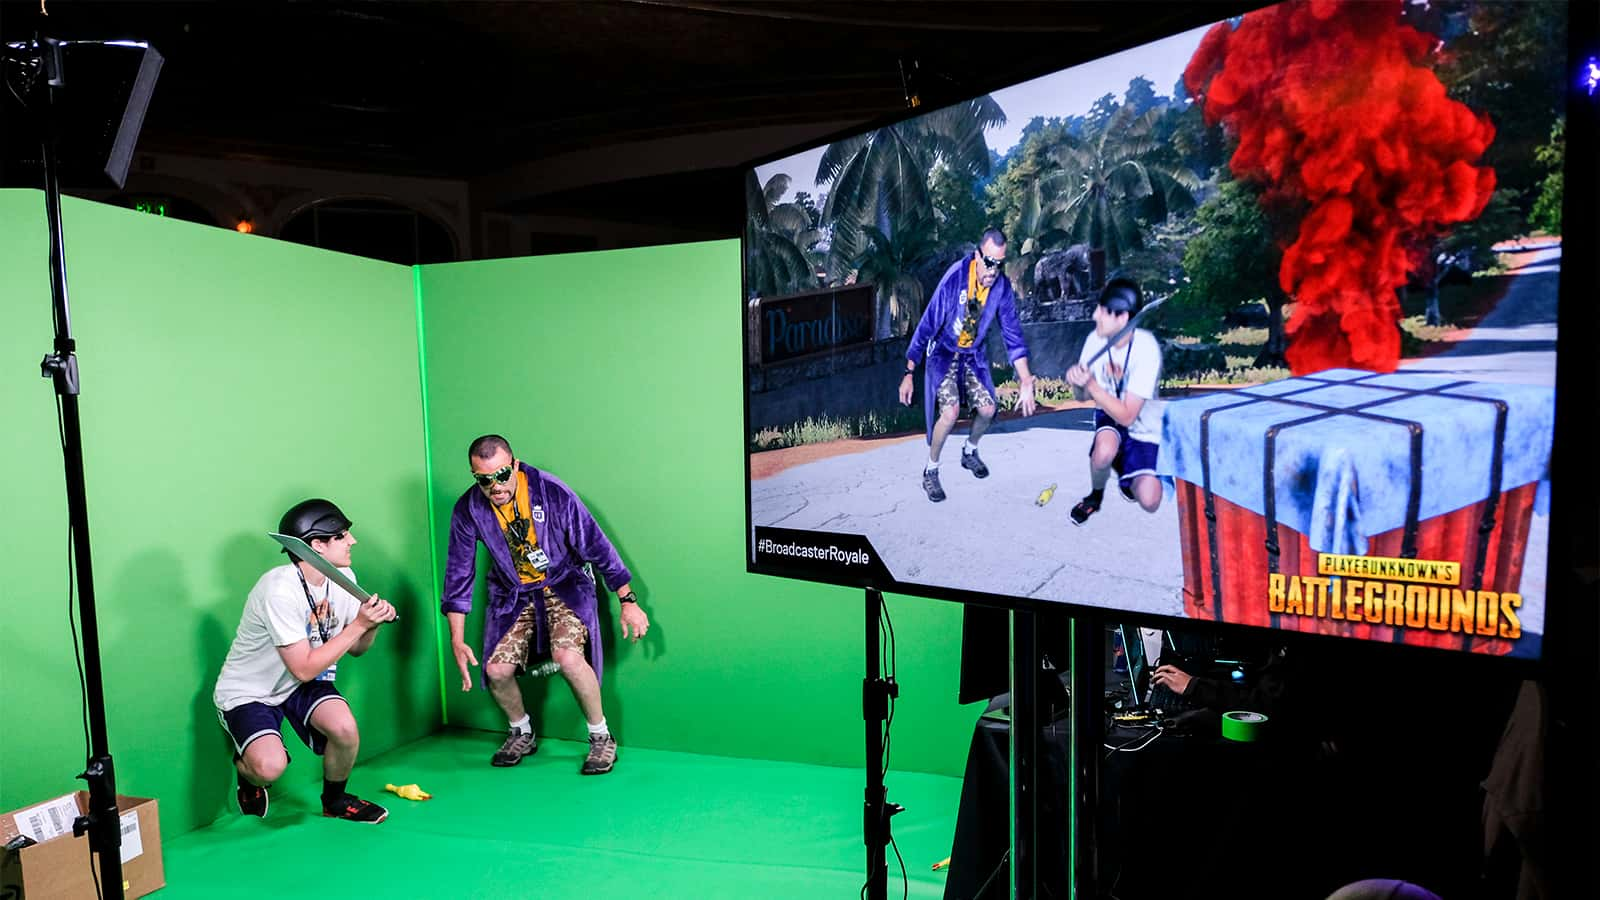 Green screen activation at Paramount theater at Twitch Broadcaster Royale.